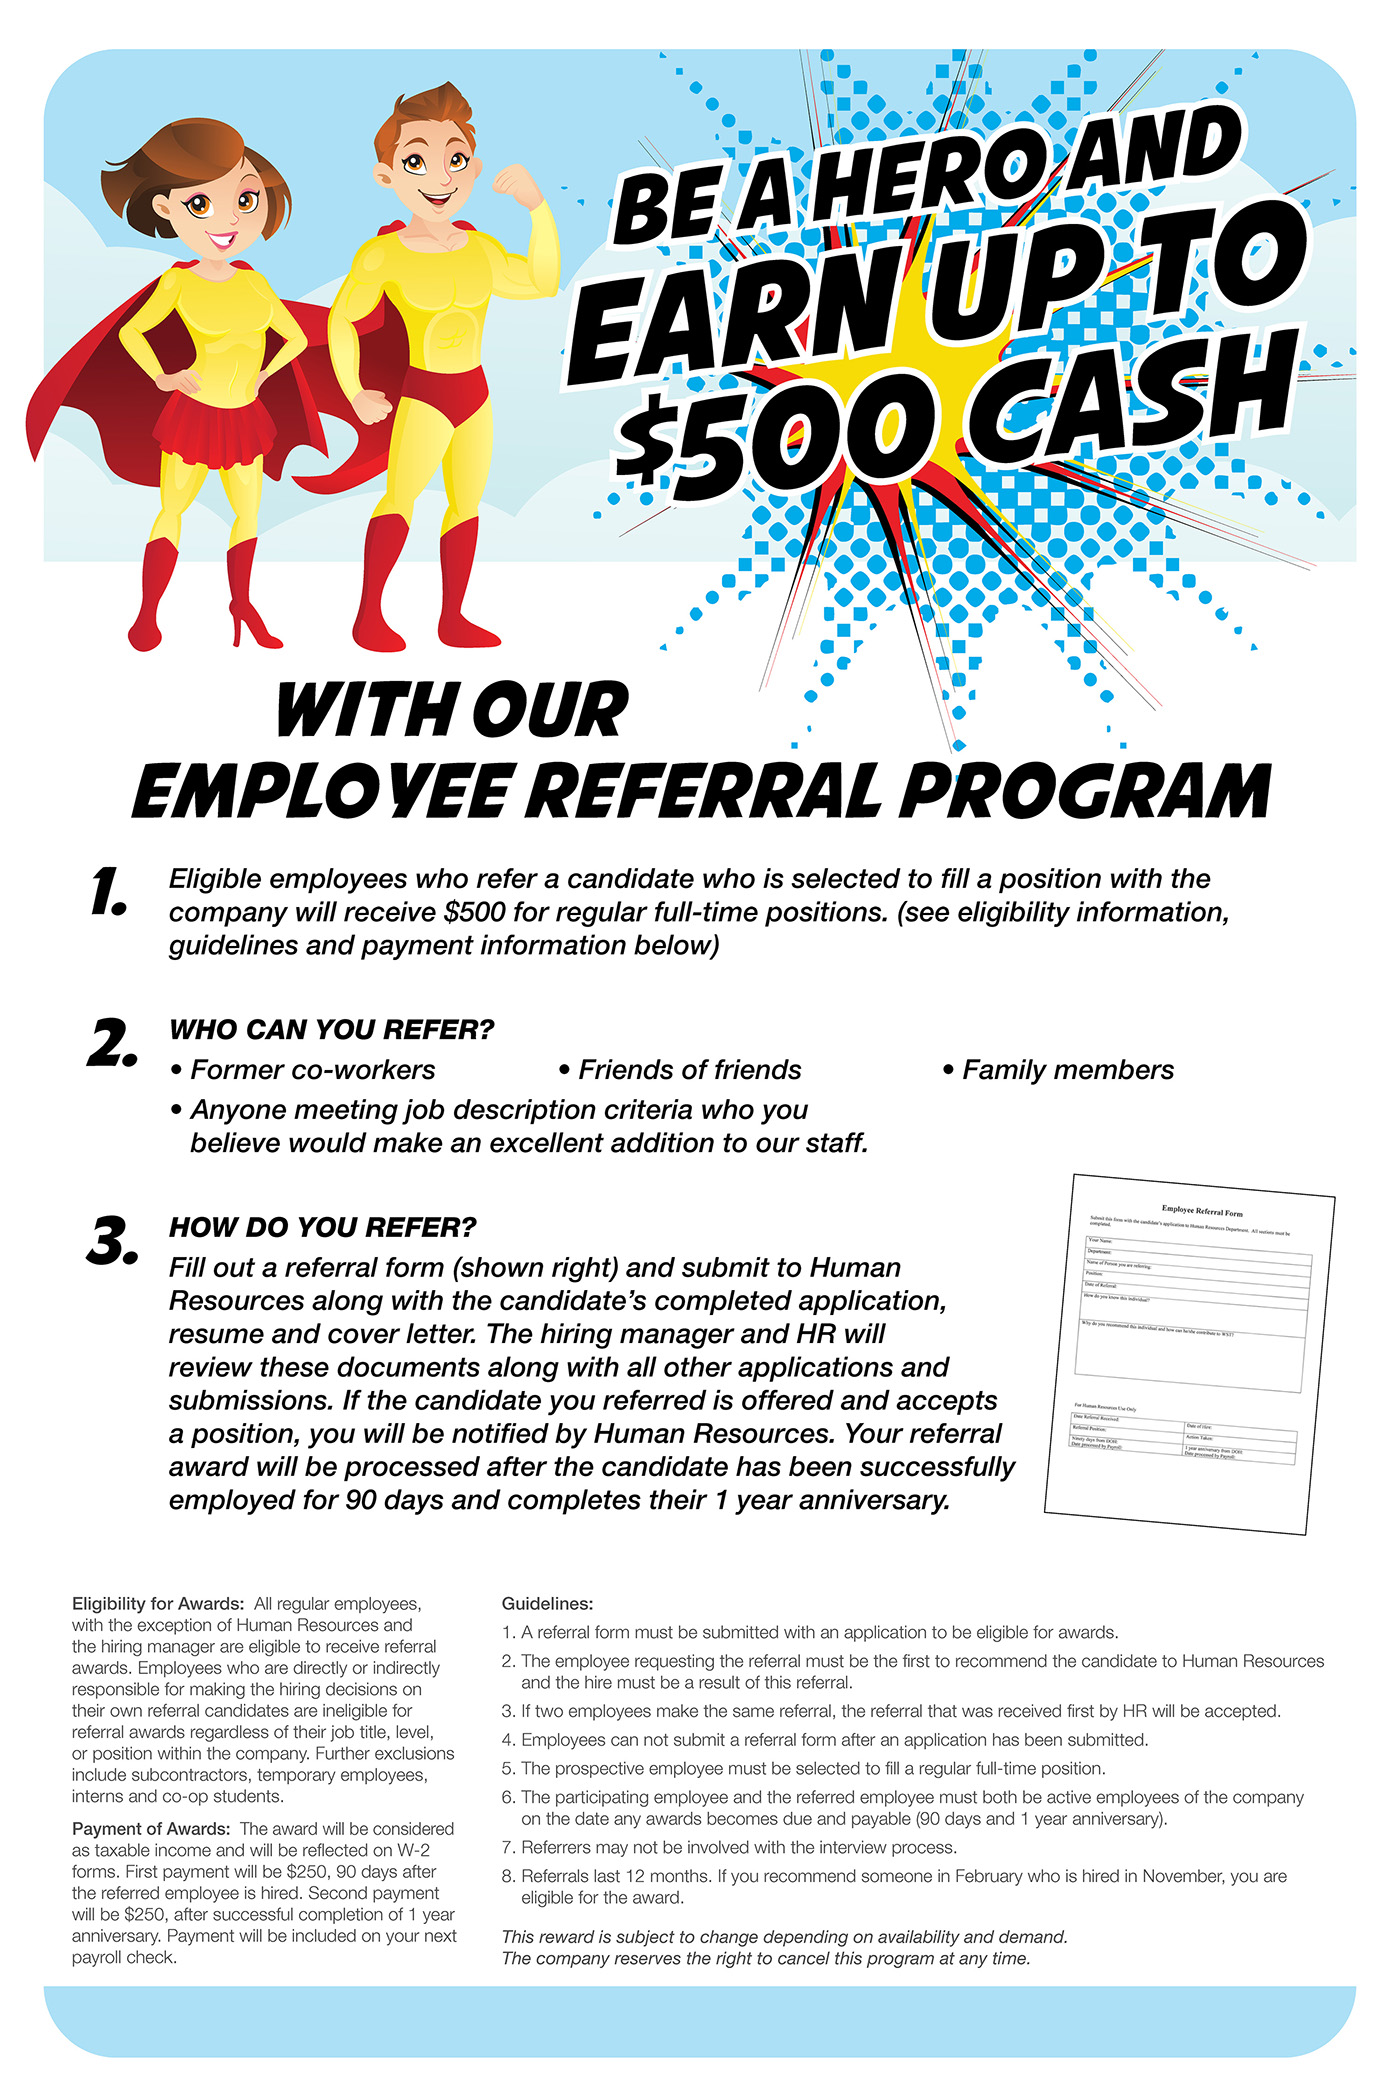 employee referral program poster on behance